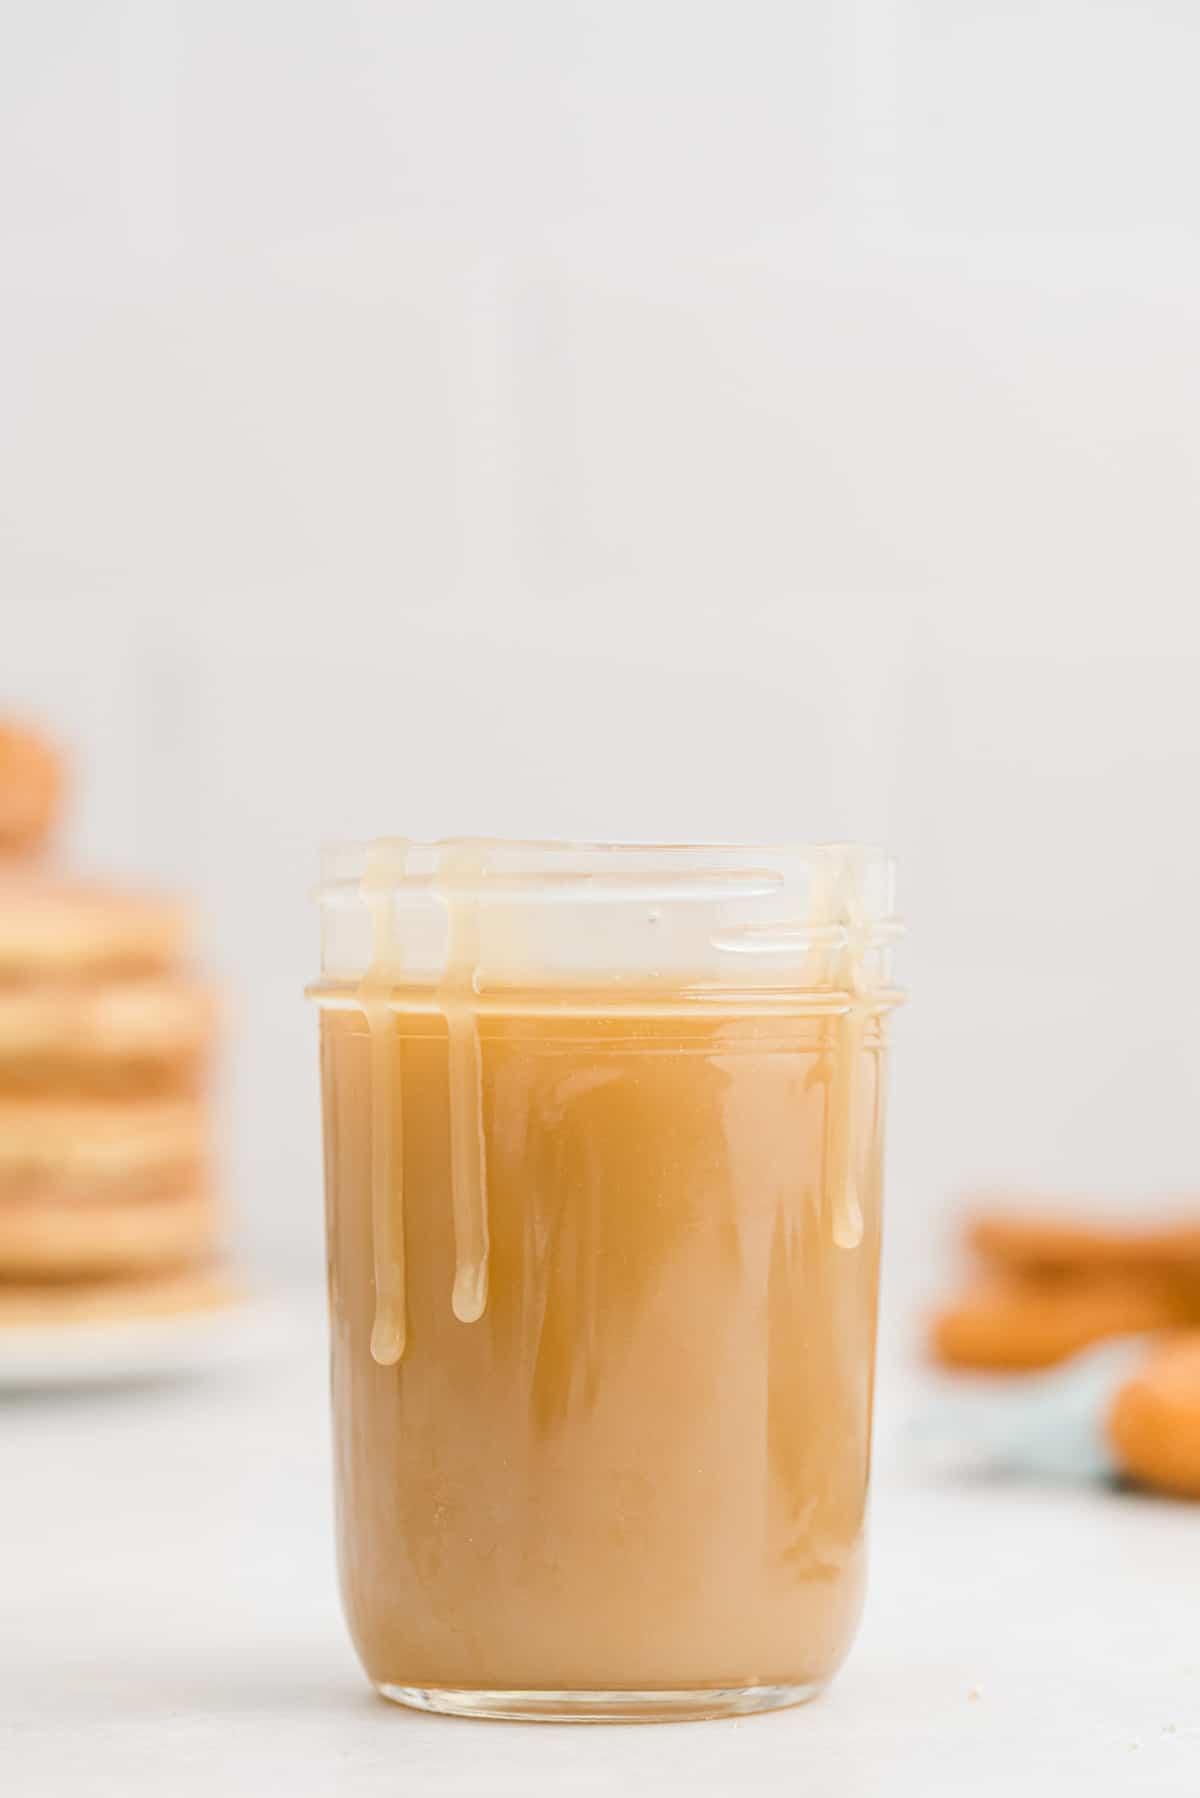 Caramel in a jar and dripping down sides of jar.